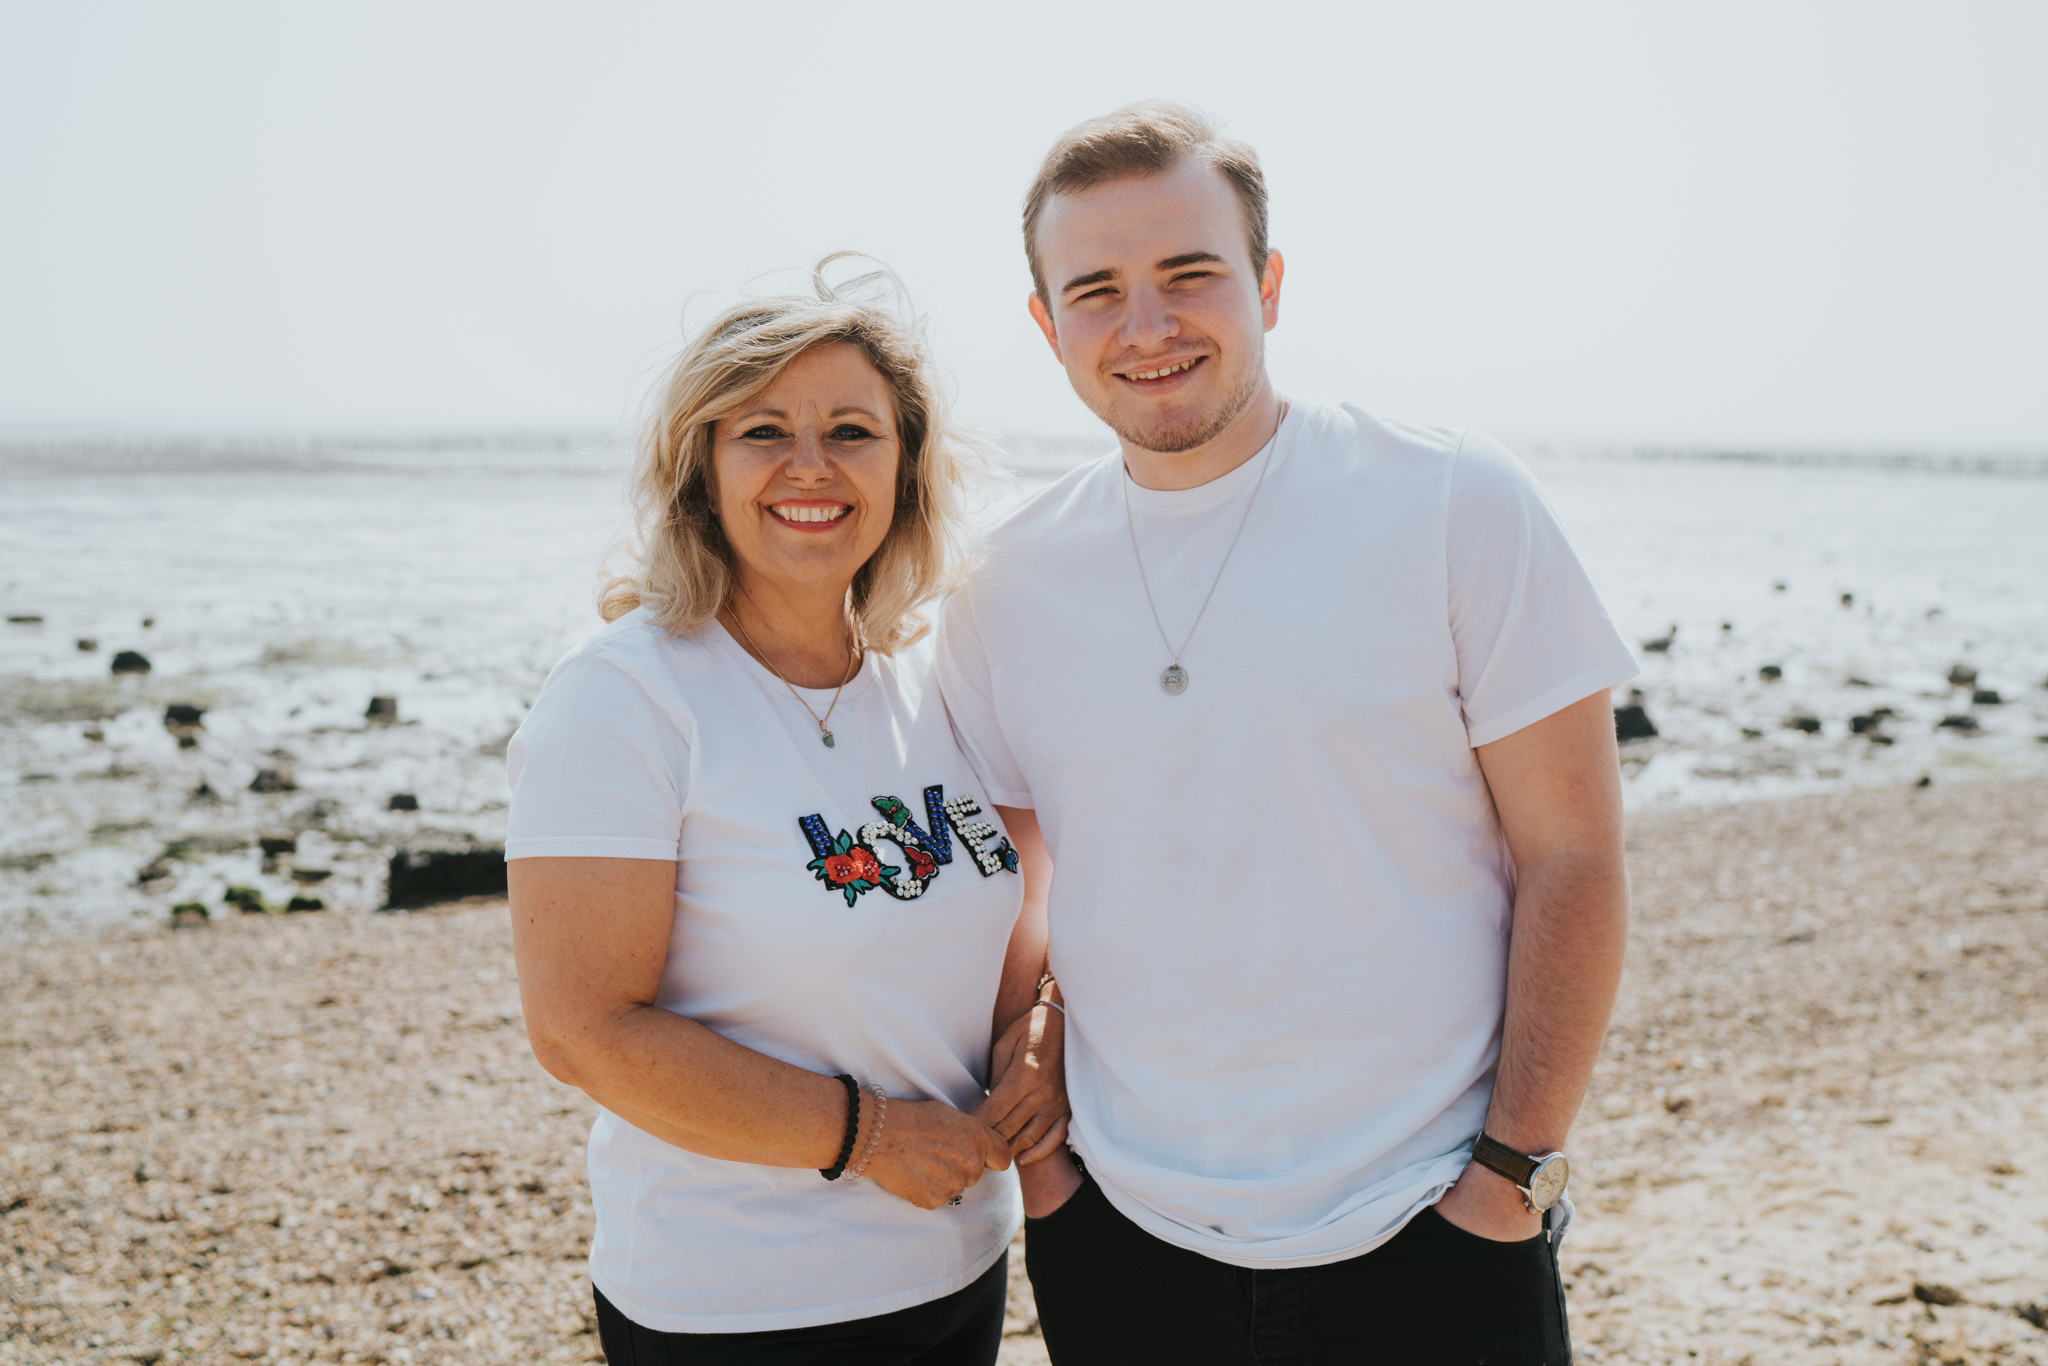 penny-family-cudmore-grove-beach-family-session-grace-elizabeth-colchester-essex-alternative-wedding-lifestyle-photographer-essex-suffolk-devon-32.jpg